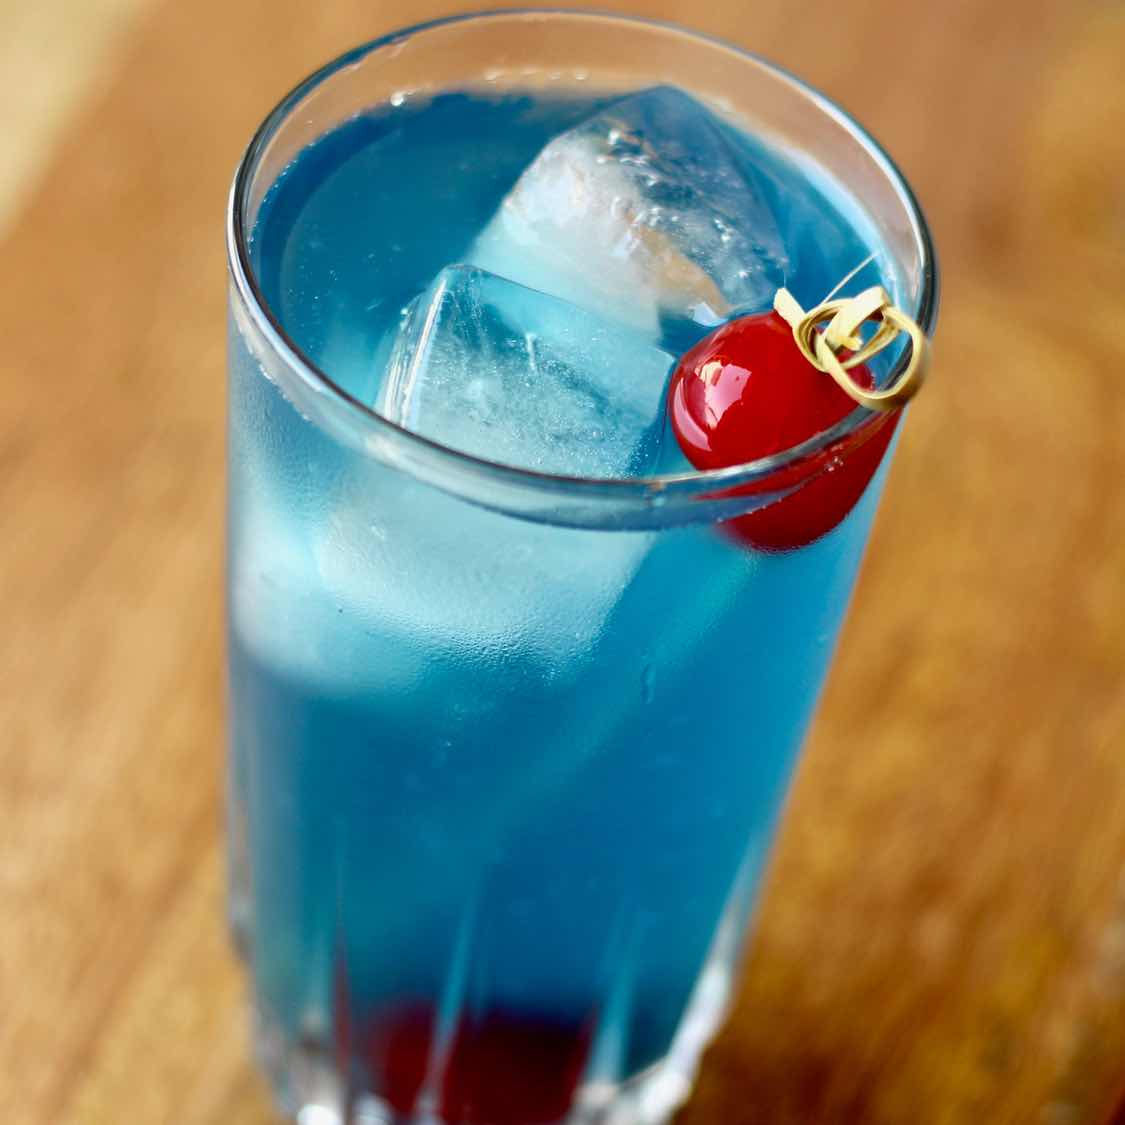 Adios Motherfucker Cocktail - The best AMF you will ever have